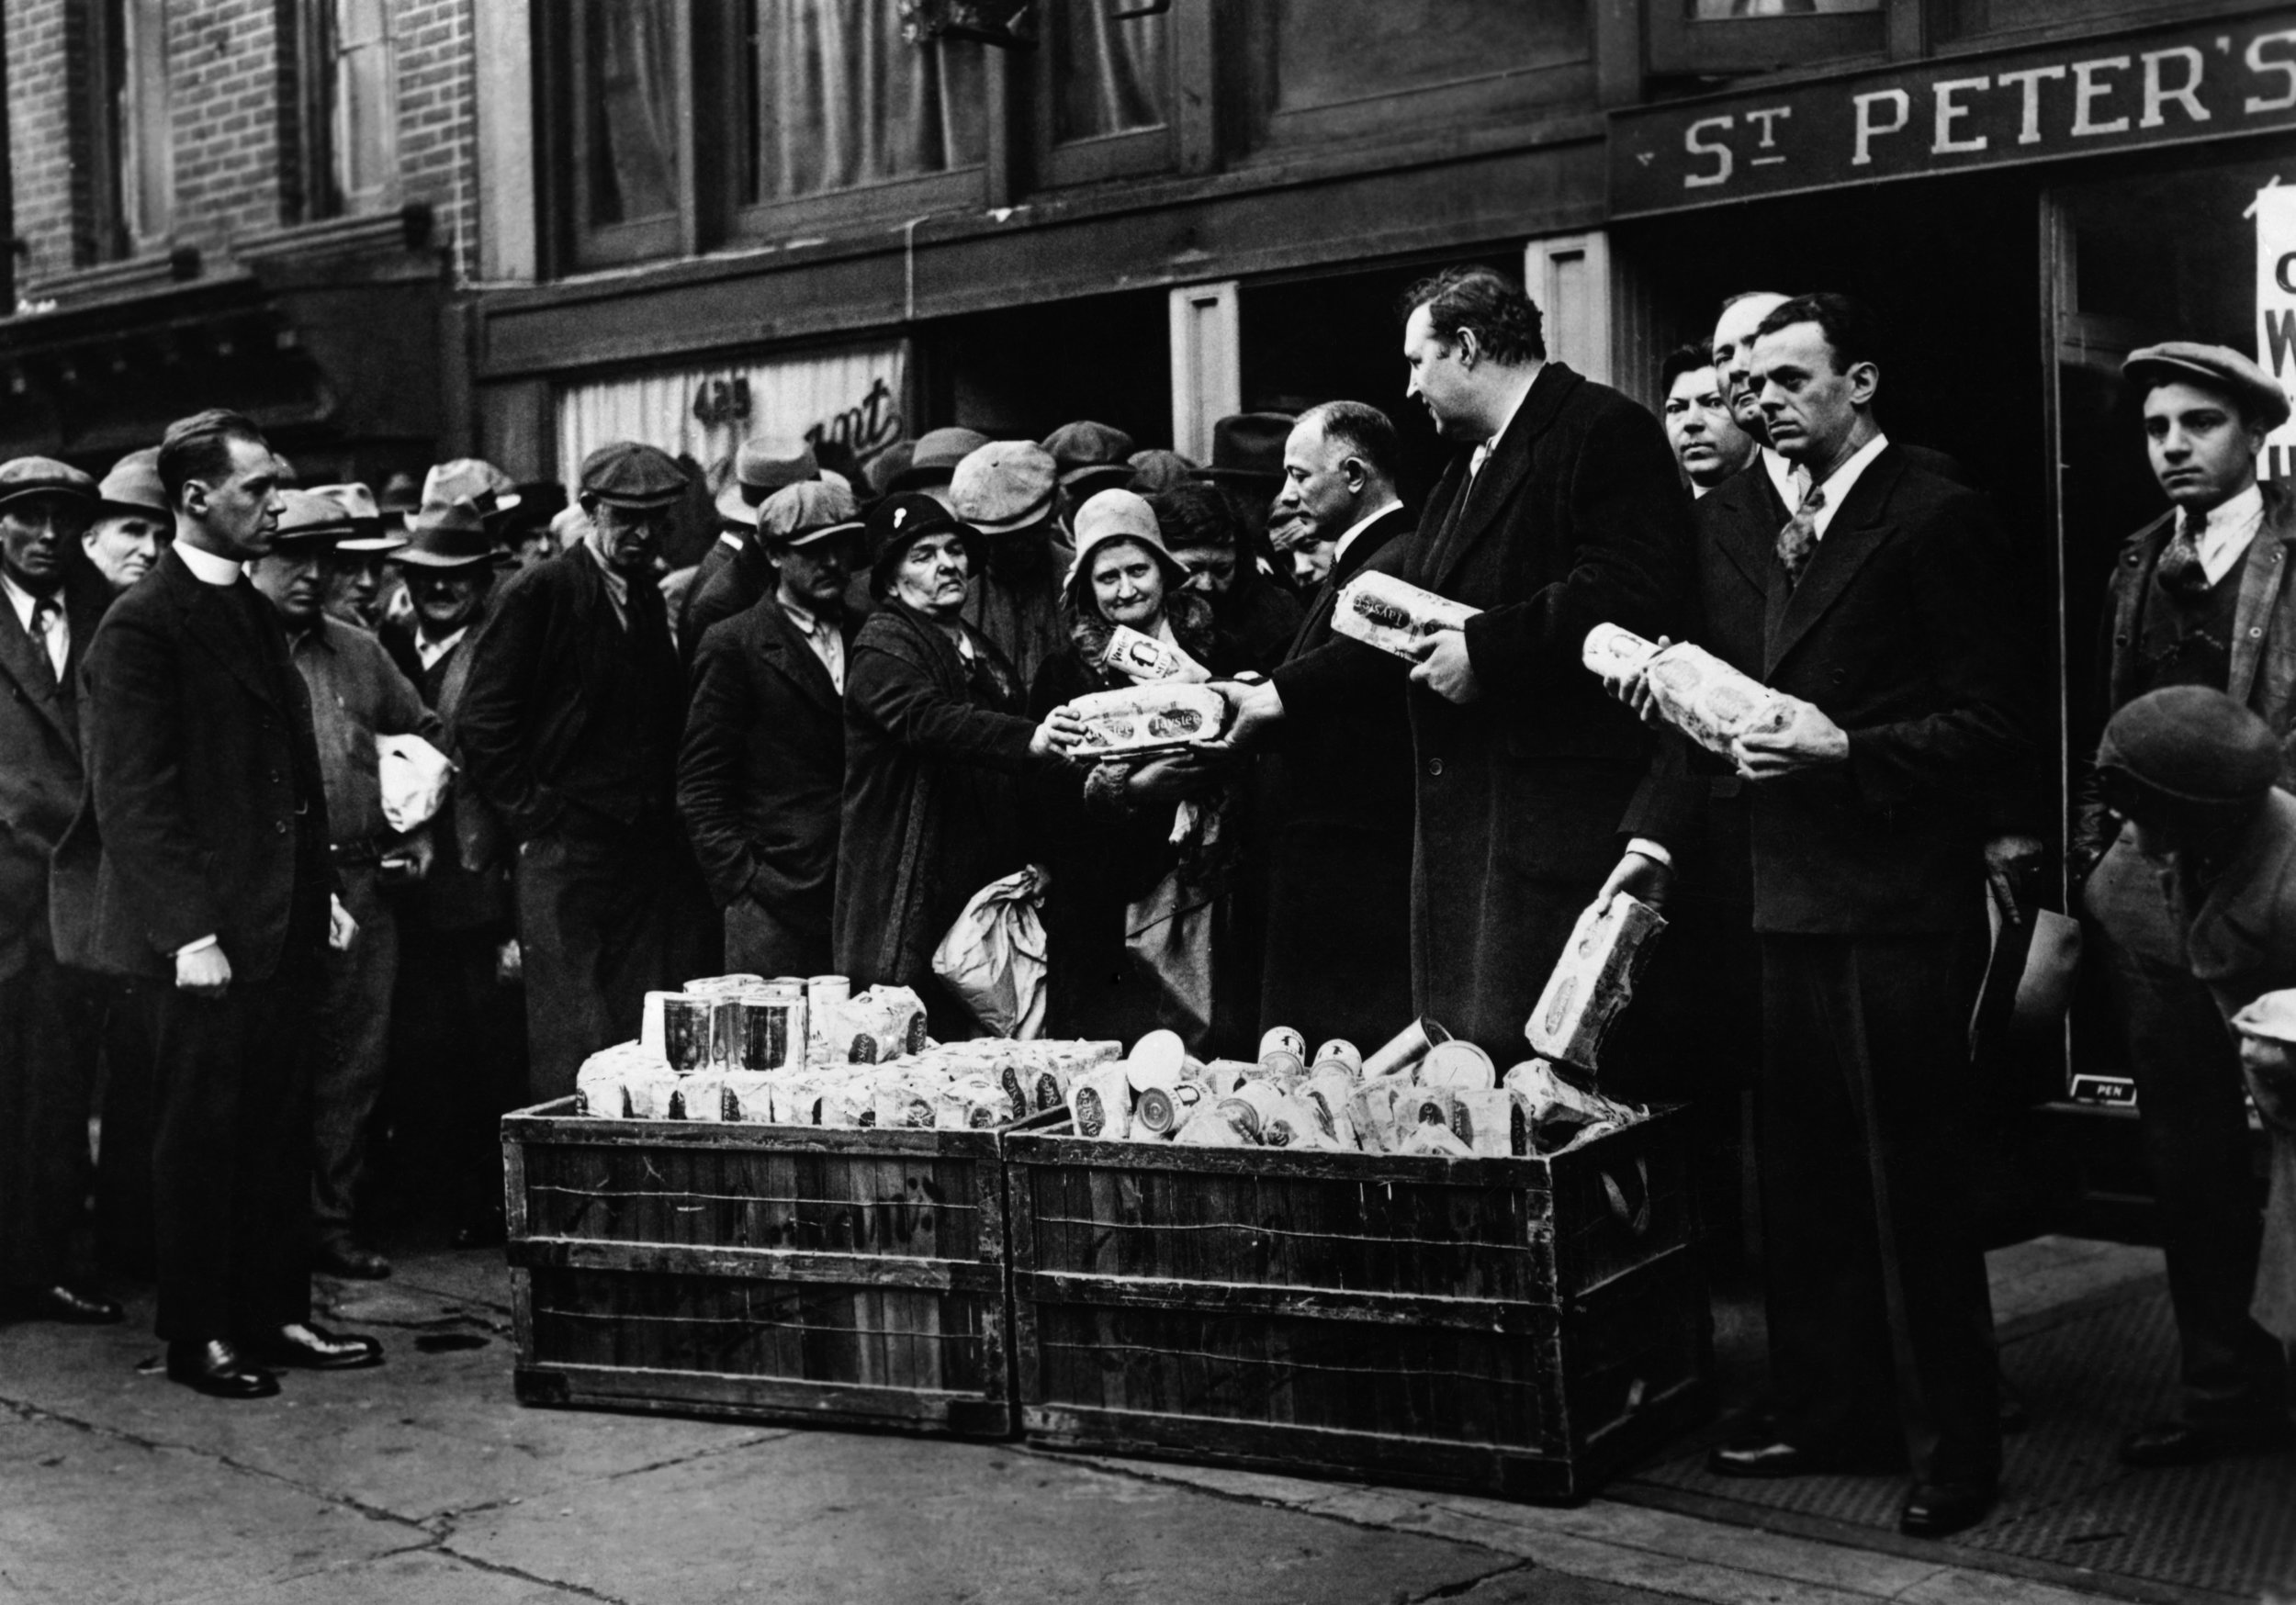 The bread and soup lines of the Great Depression.